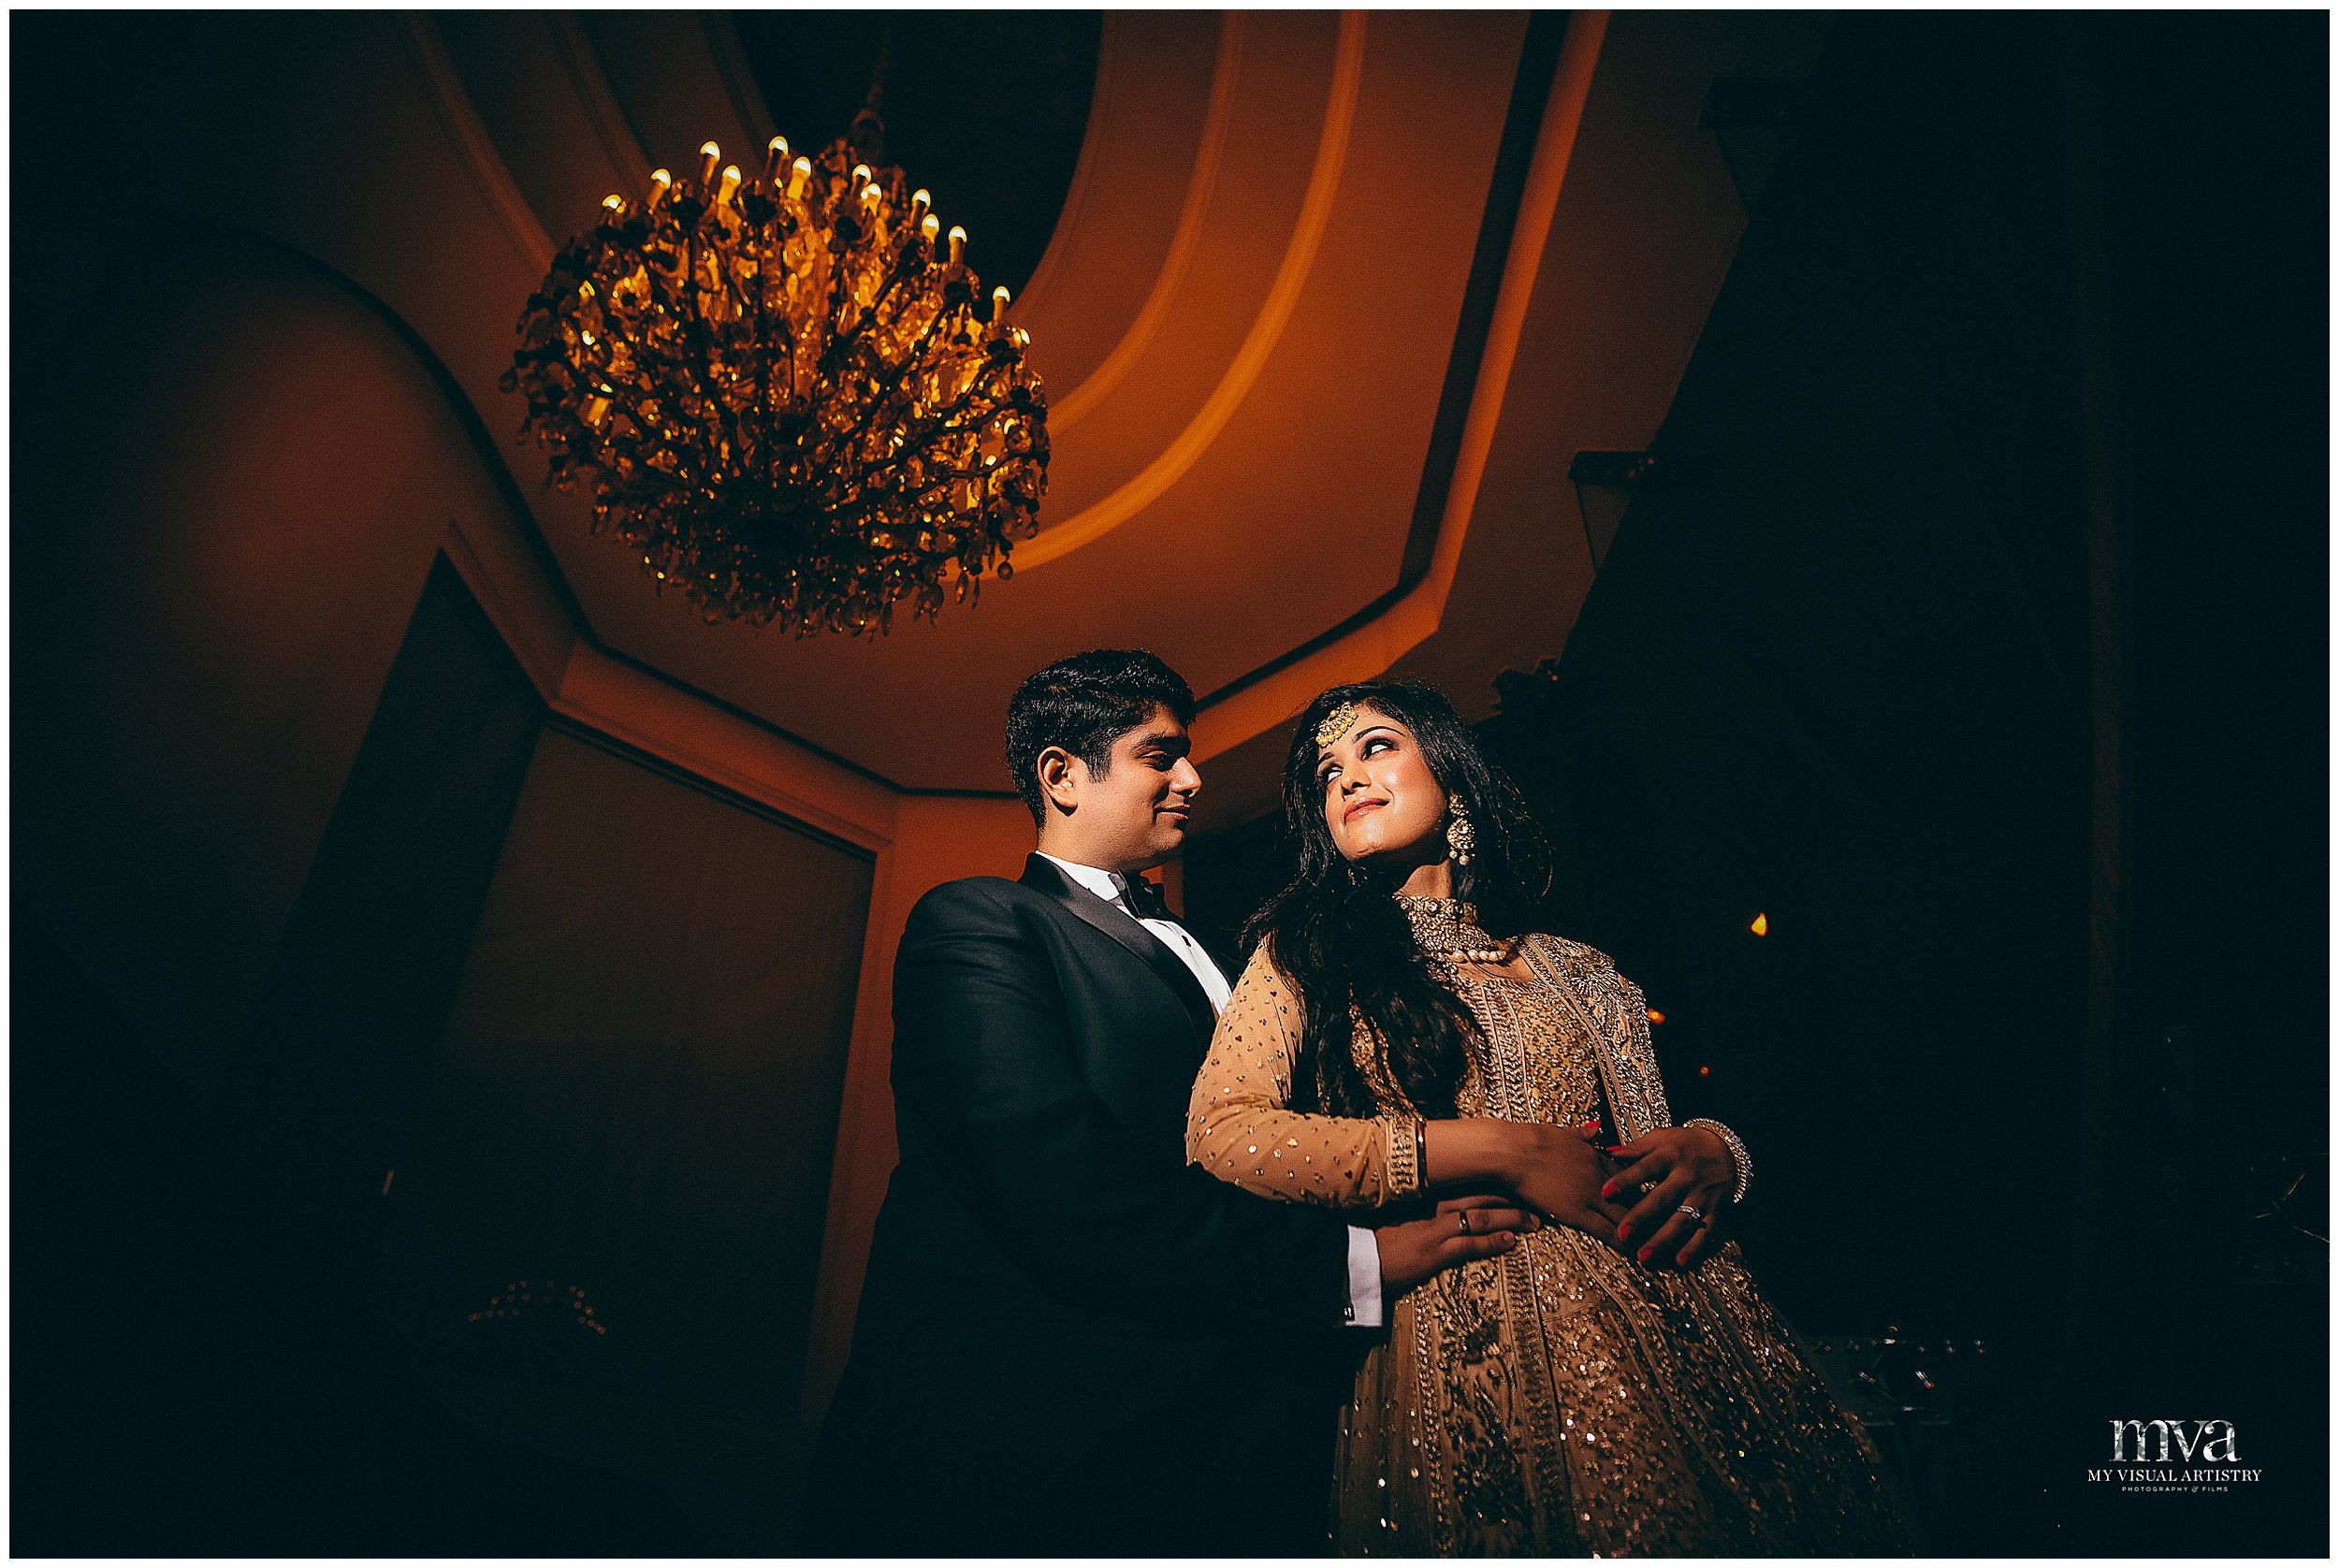 SIDDARTH_SAKSHI_MYVISUALARTISTRY_WEDDING_PHOTOGRAPHY_MVA_EROSHANGRILA_DELHI_0001.jpg